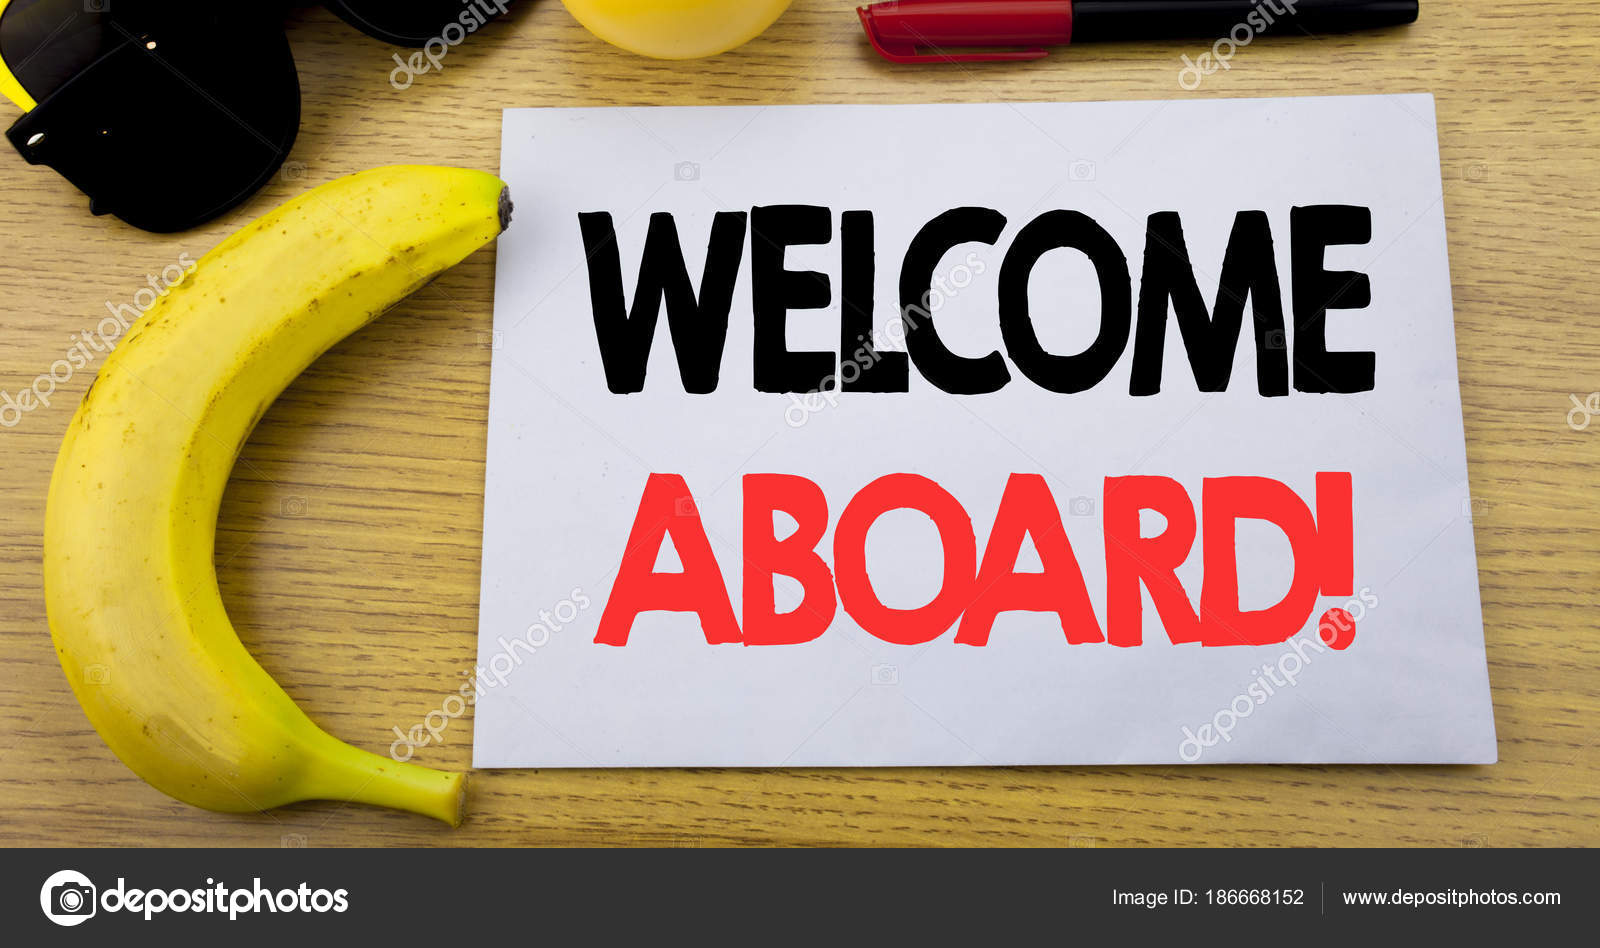 Welcome Aboard Business Concept For Greeting Join Member Written On